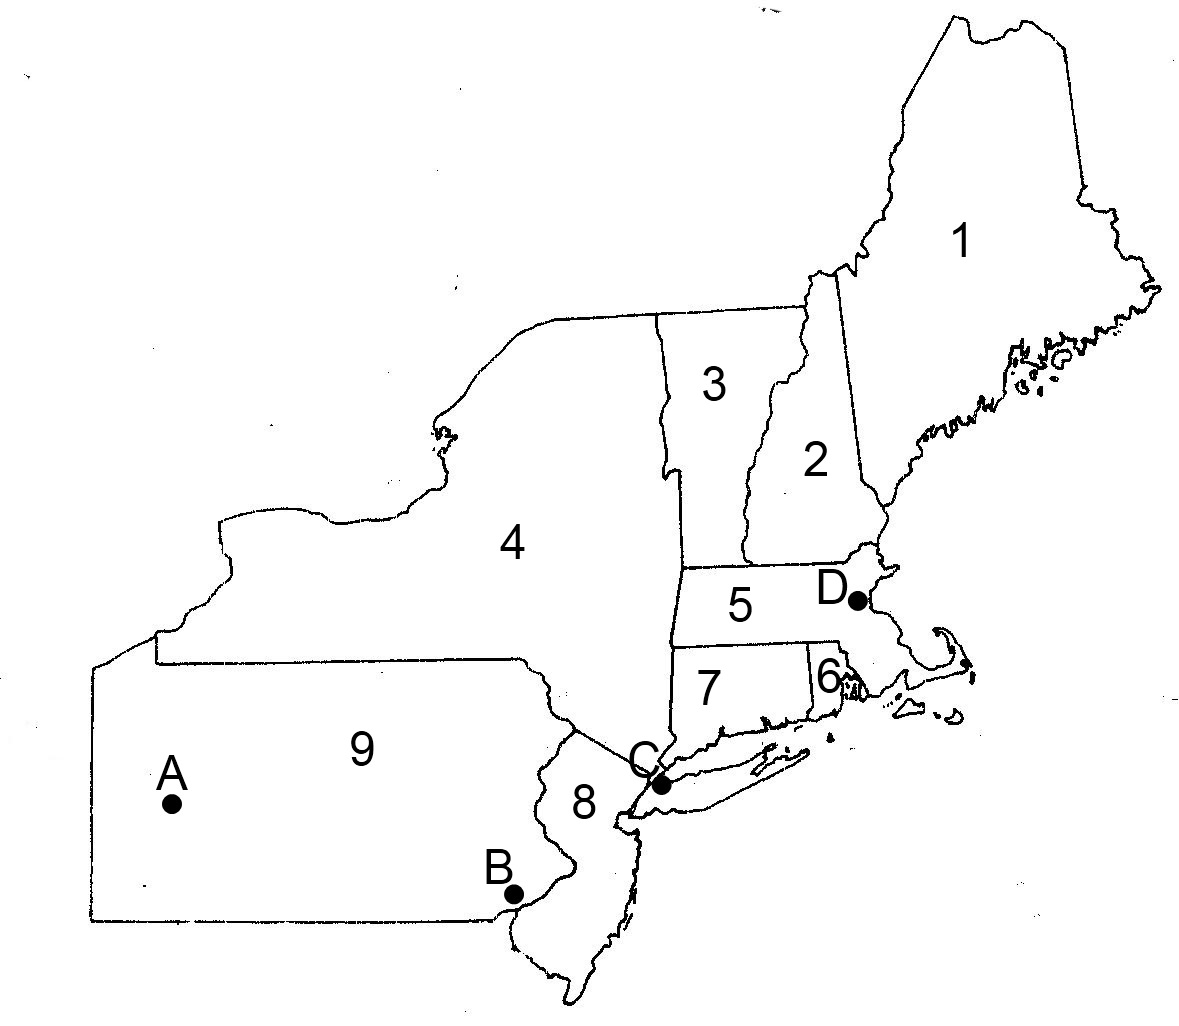 Label Northeastern US States Printout EnchantedLearningcom Region - Northeast region of us map